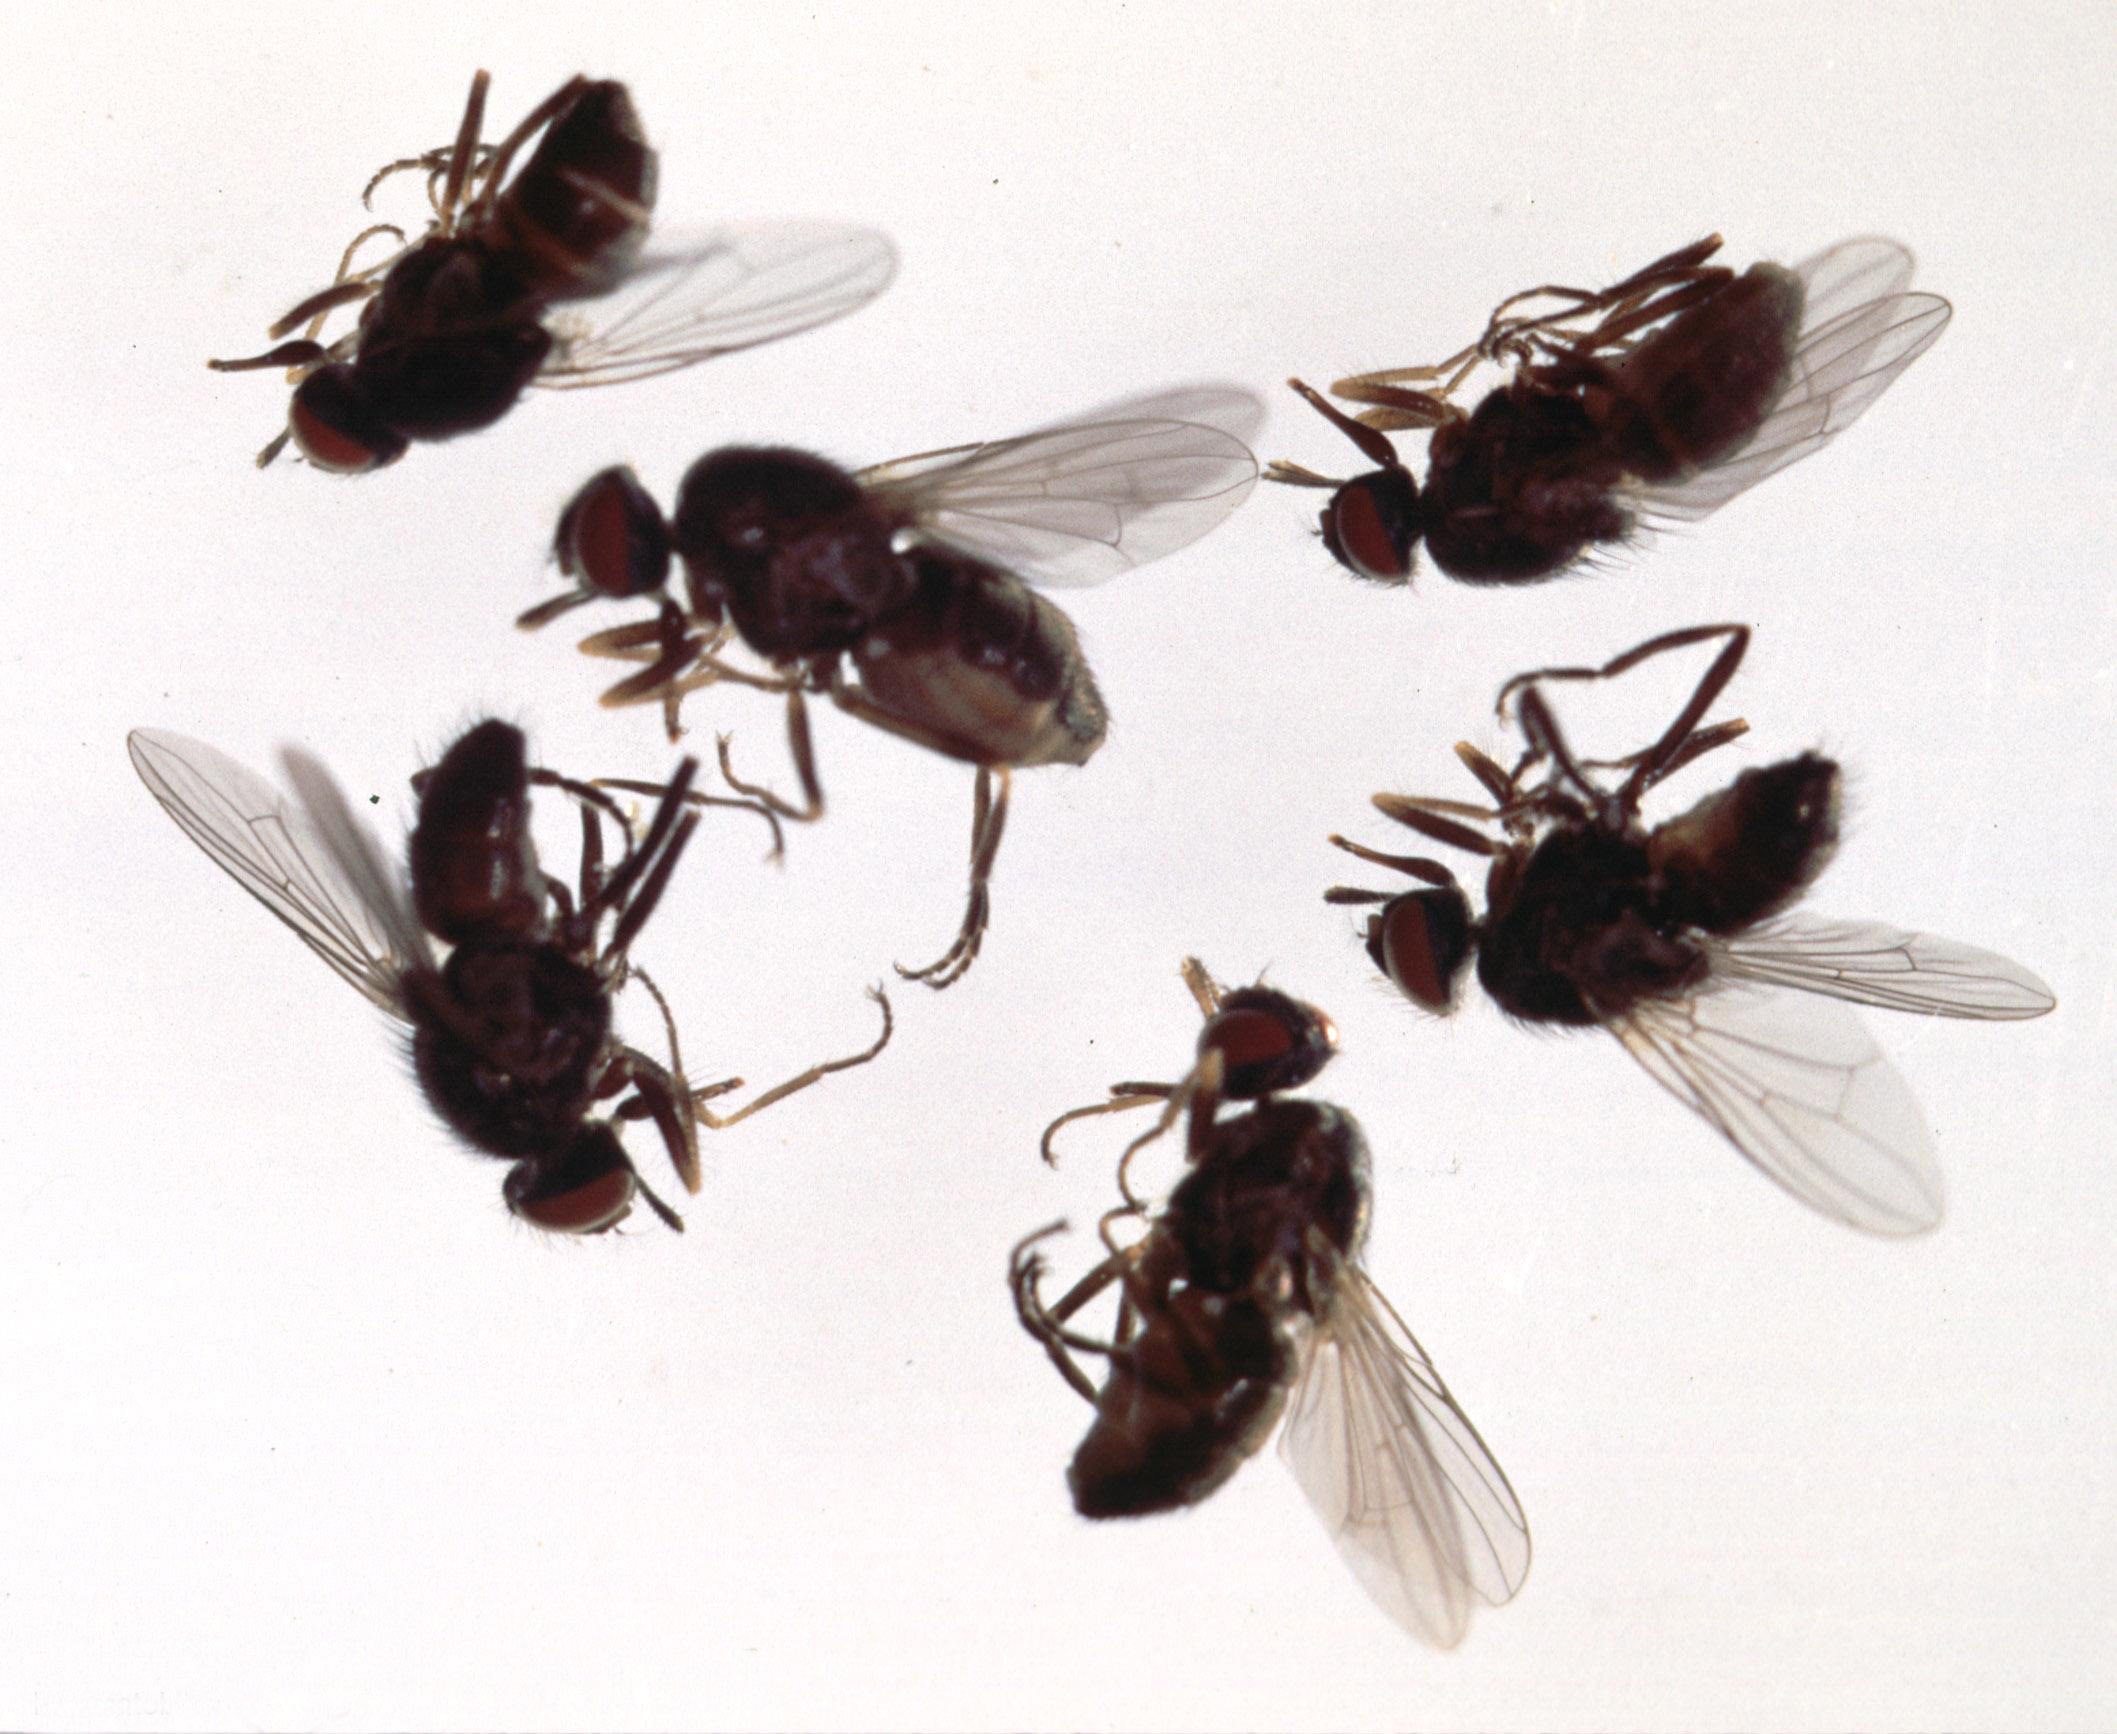 The control of flying insects   house fly. The control of flying insects   house fly     Insectox